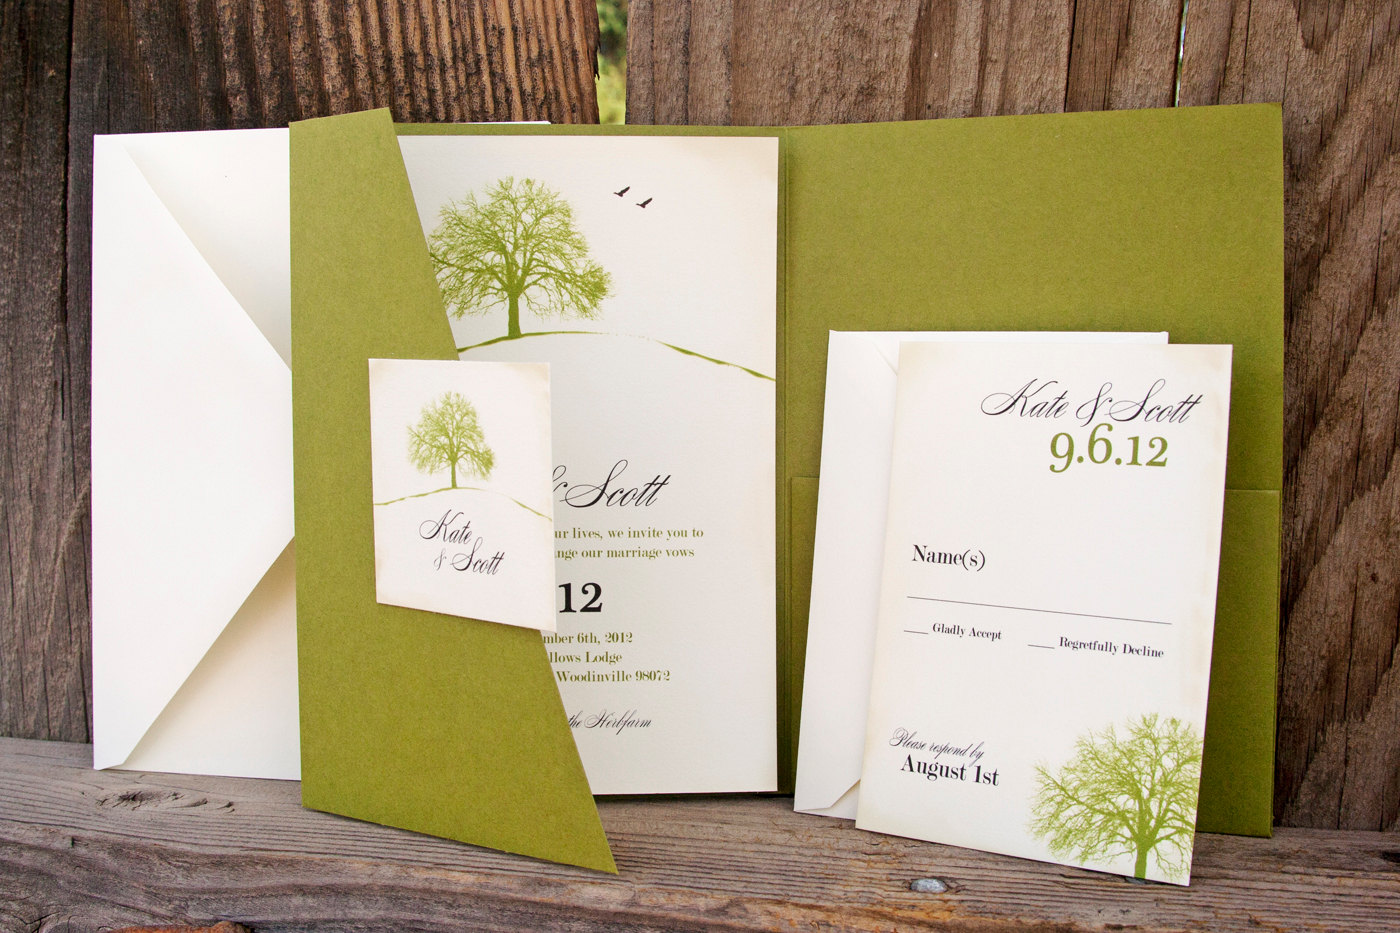 Eco-friendly-wedding-finds-recycled-on-etsy-green-ivory-invitations.original